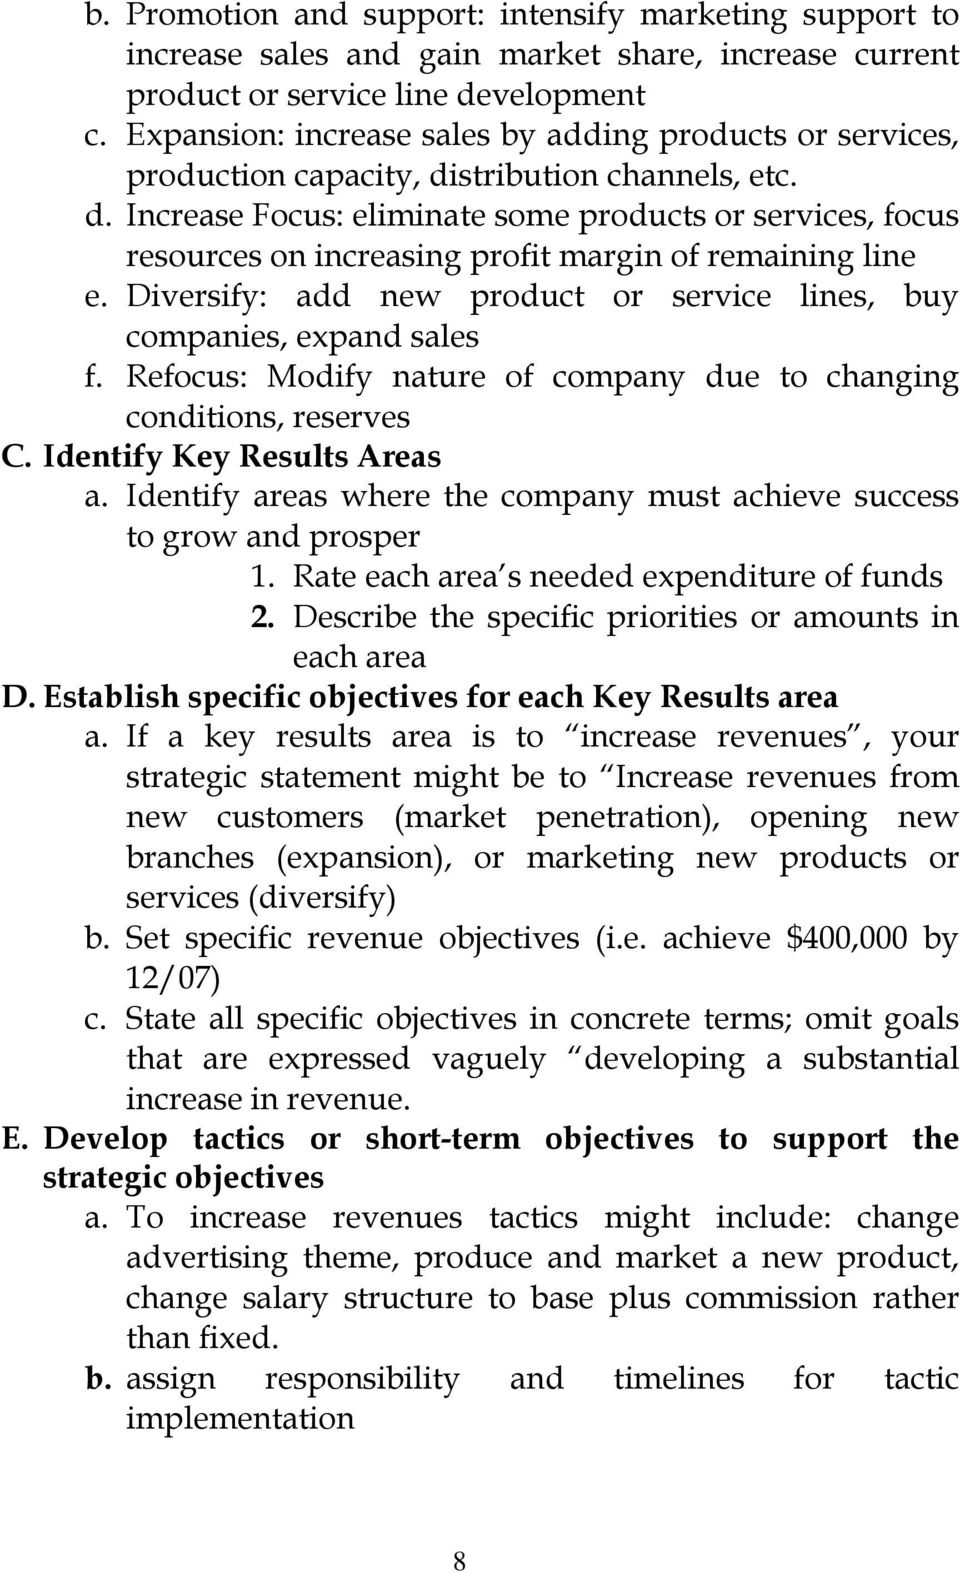 Diversify: add new product or service lines, buy companies, expand sales f. Refocus: Modify nature of company due to changing conditions, reserves C. Identify Key Results Areas a.